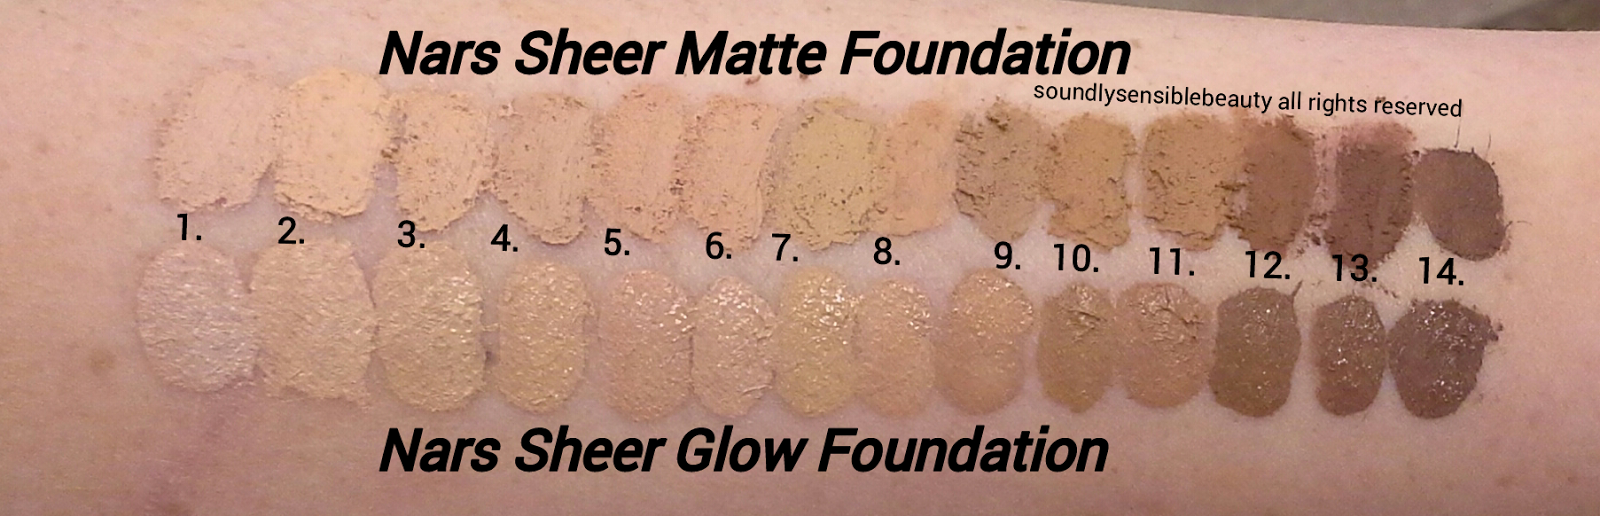 Sheer Glow Foundation by NARS #4